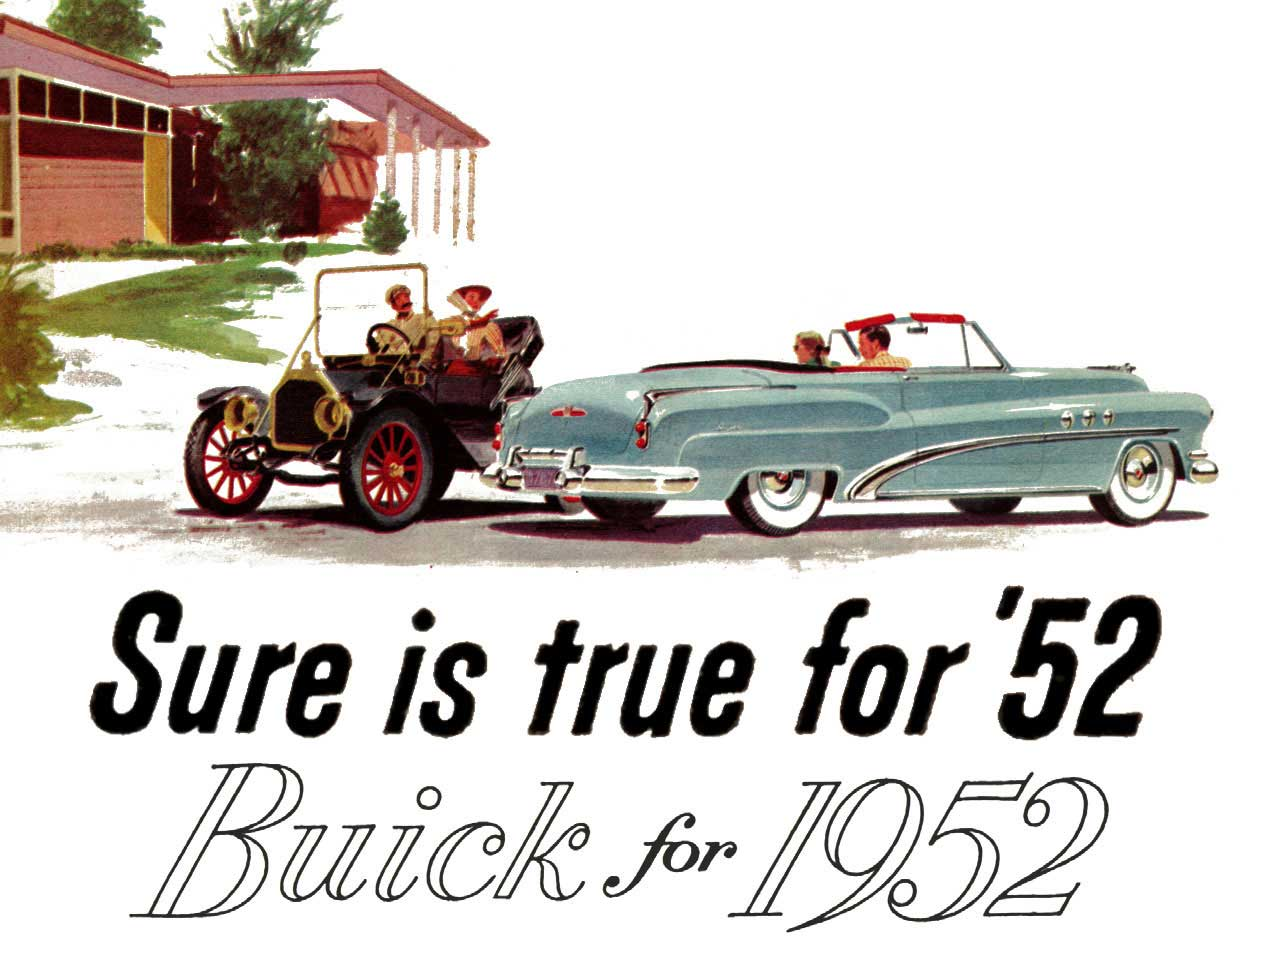 1952 Buick - Sure is True for 52